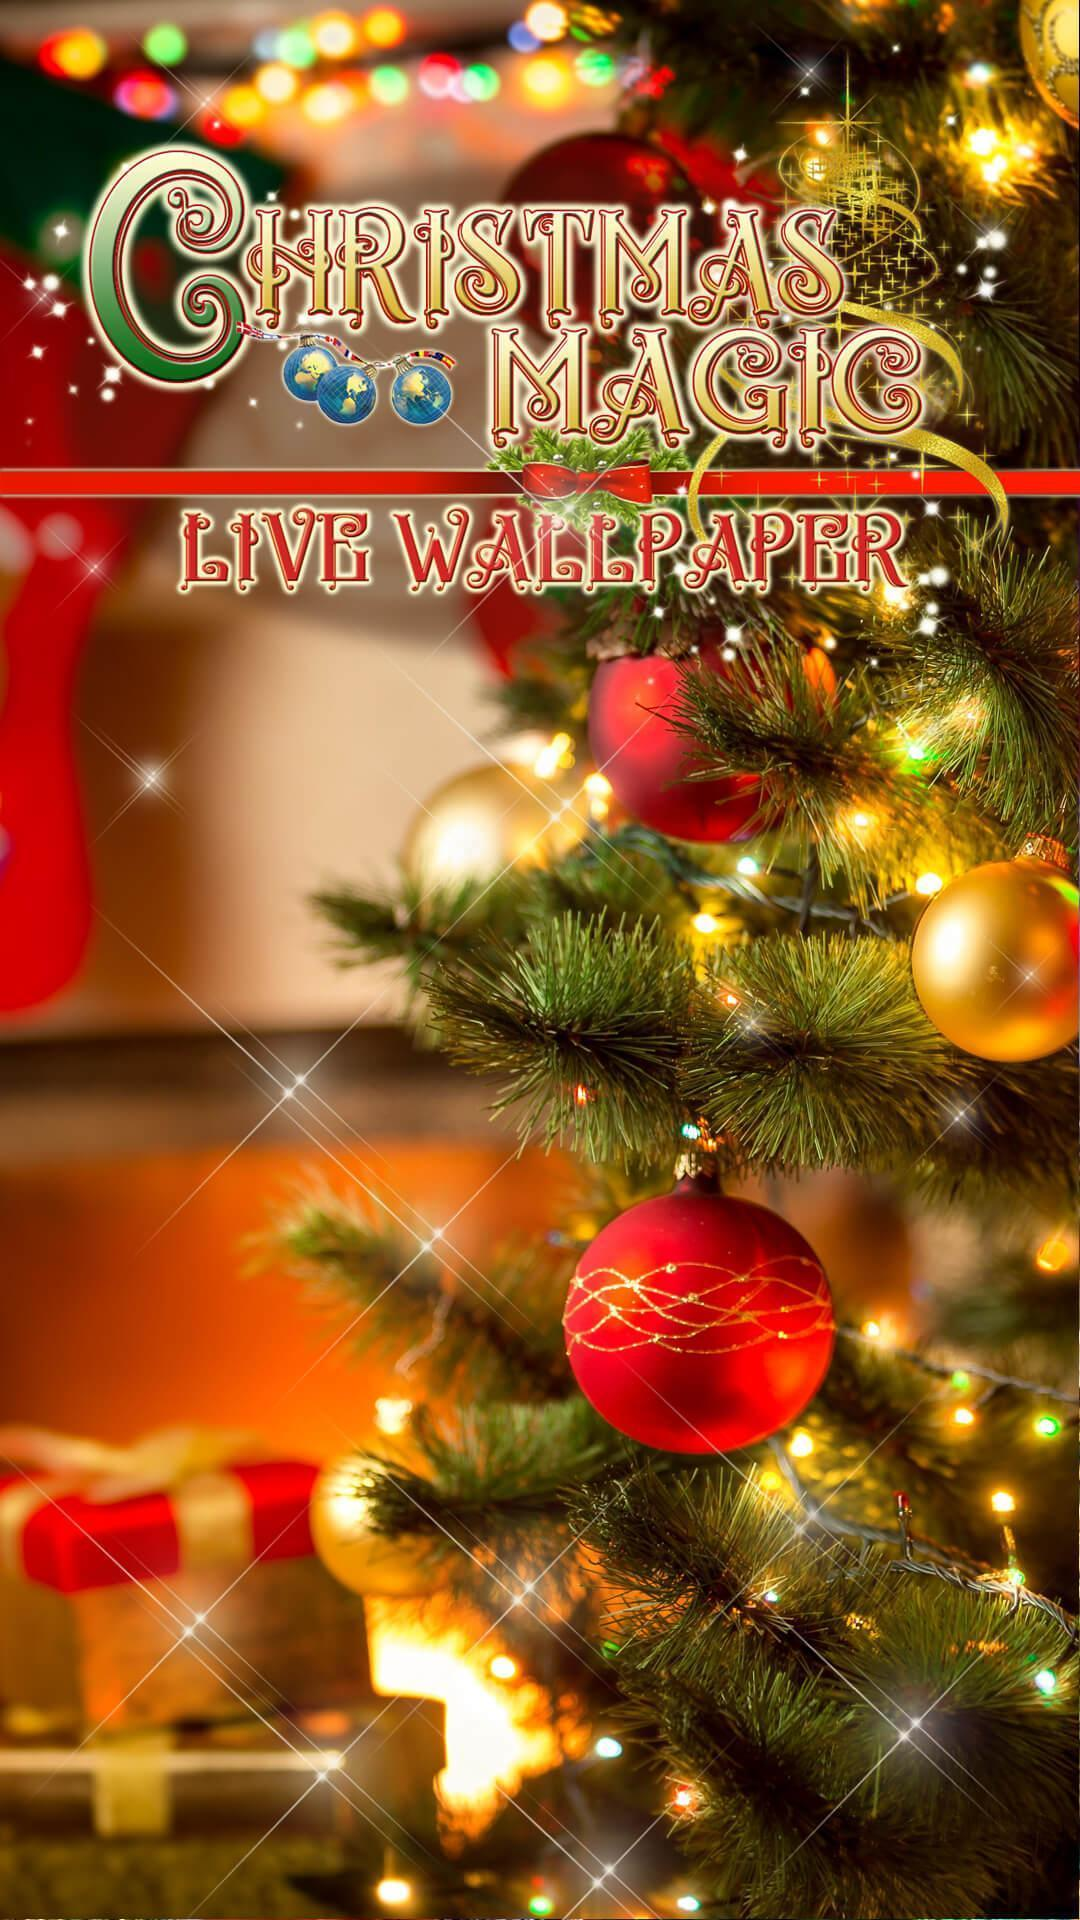 Christmas Magic Live Wallpapers Xmas 2019 for Android